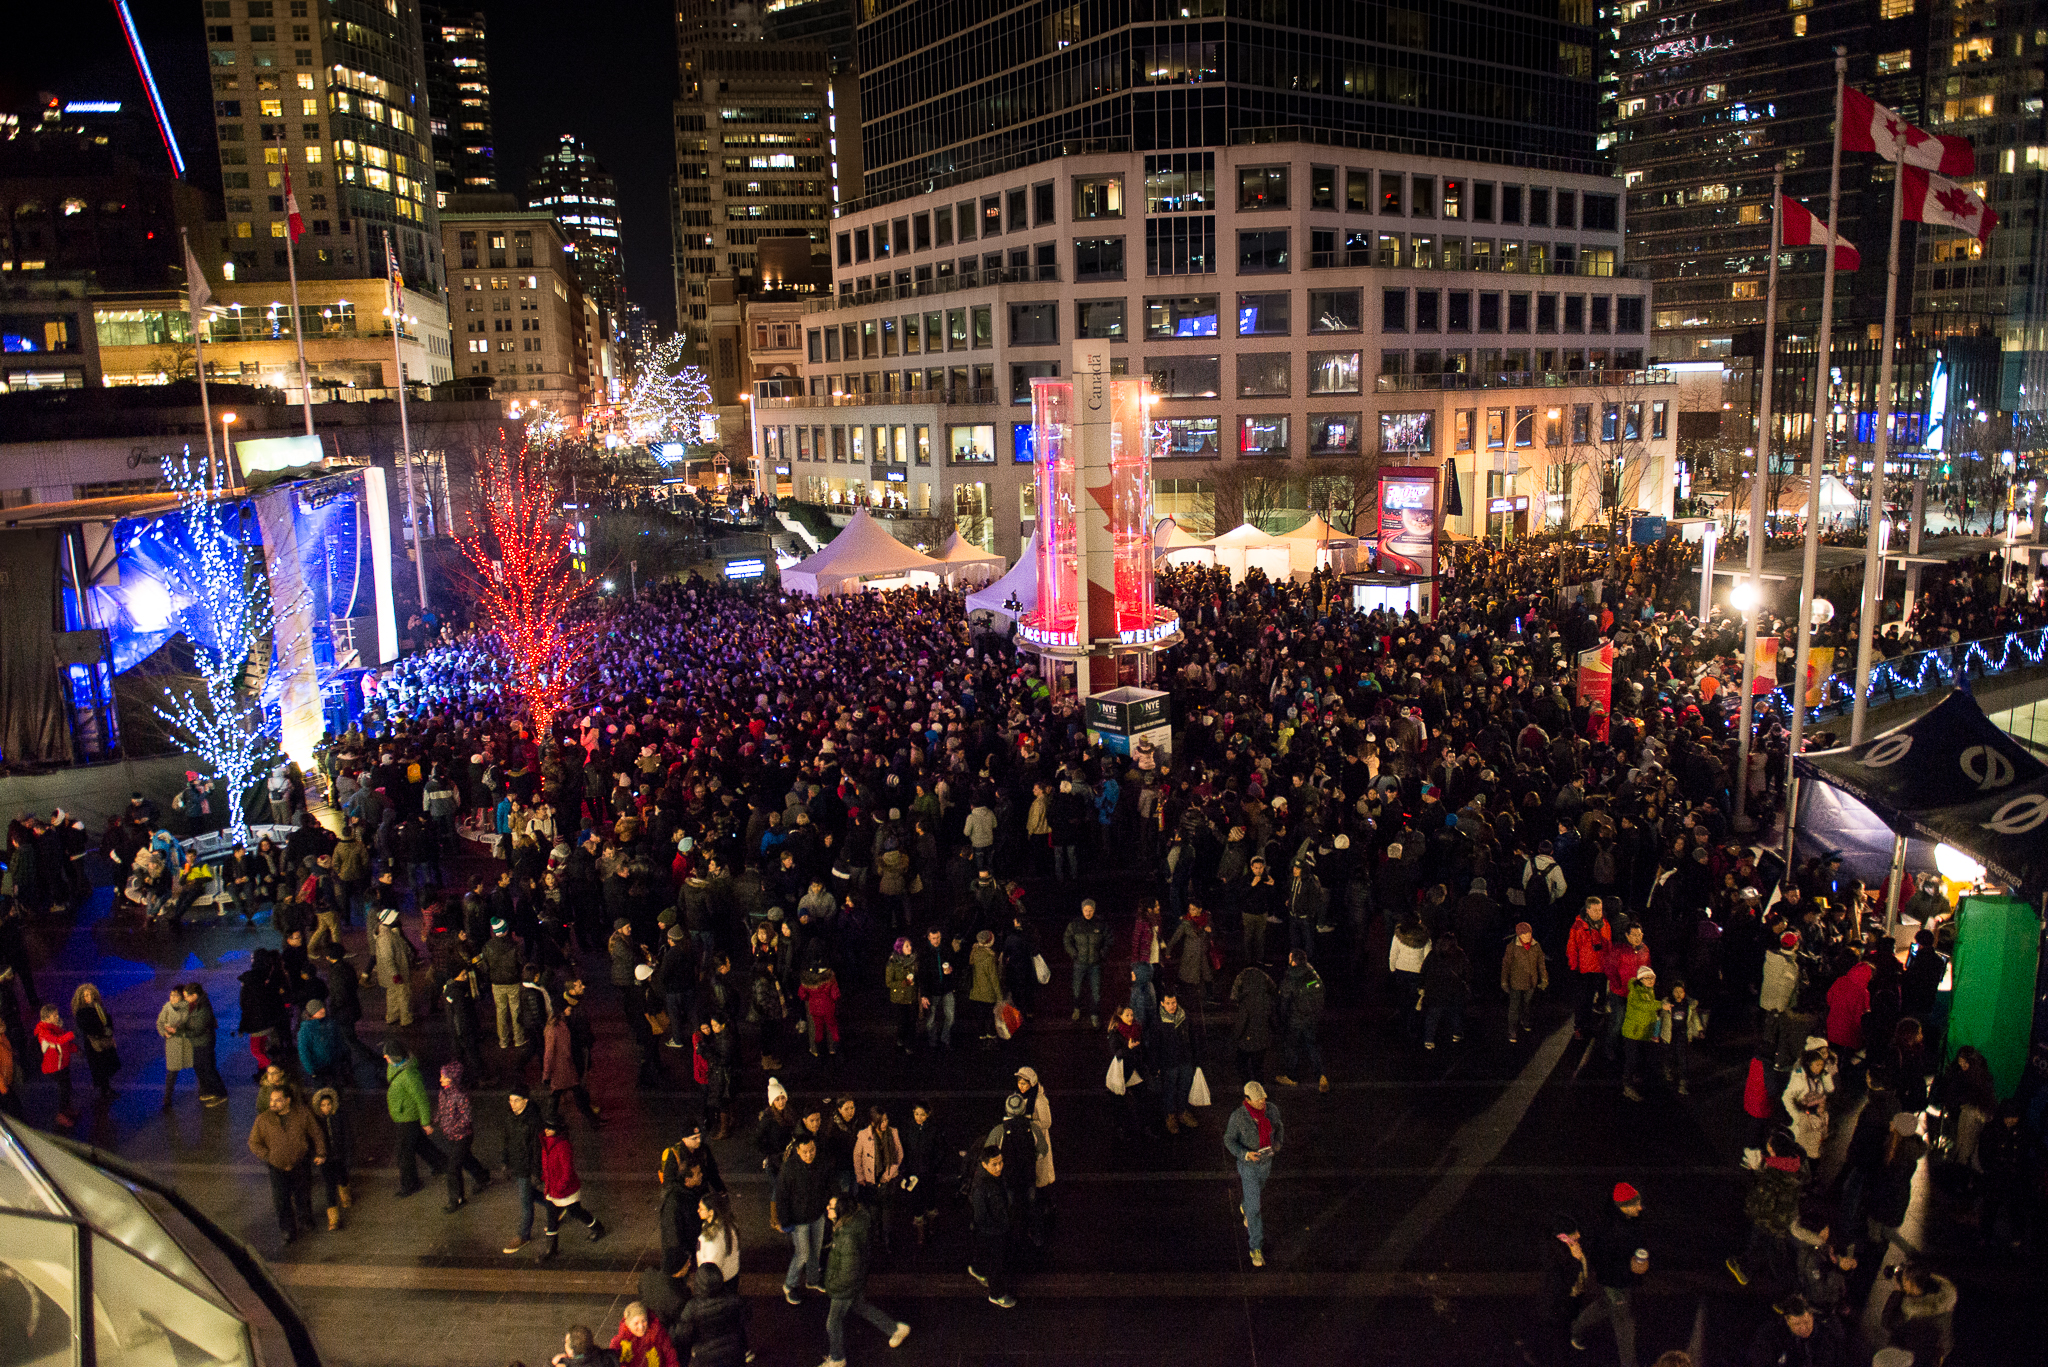 Image: Brandon Klemets / New Year's Eve Vancouver